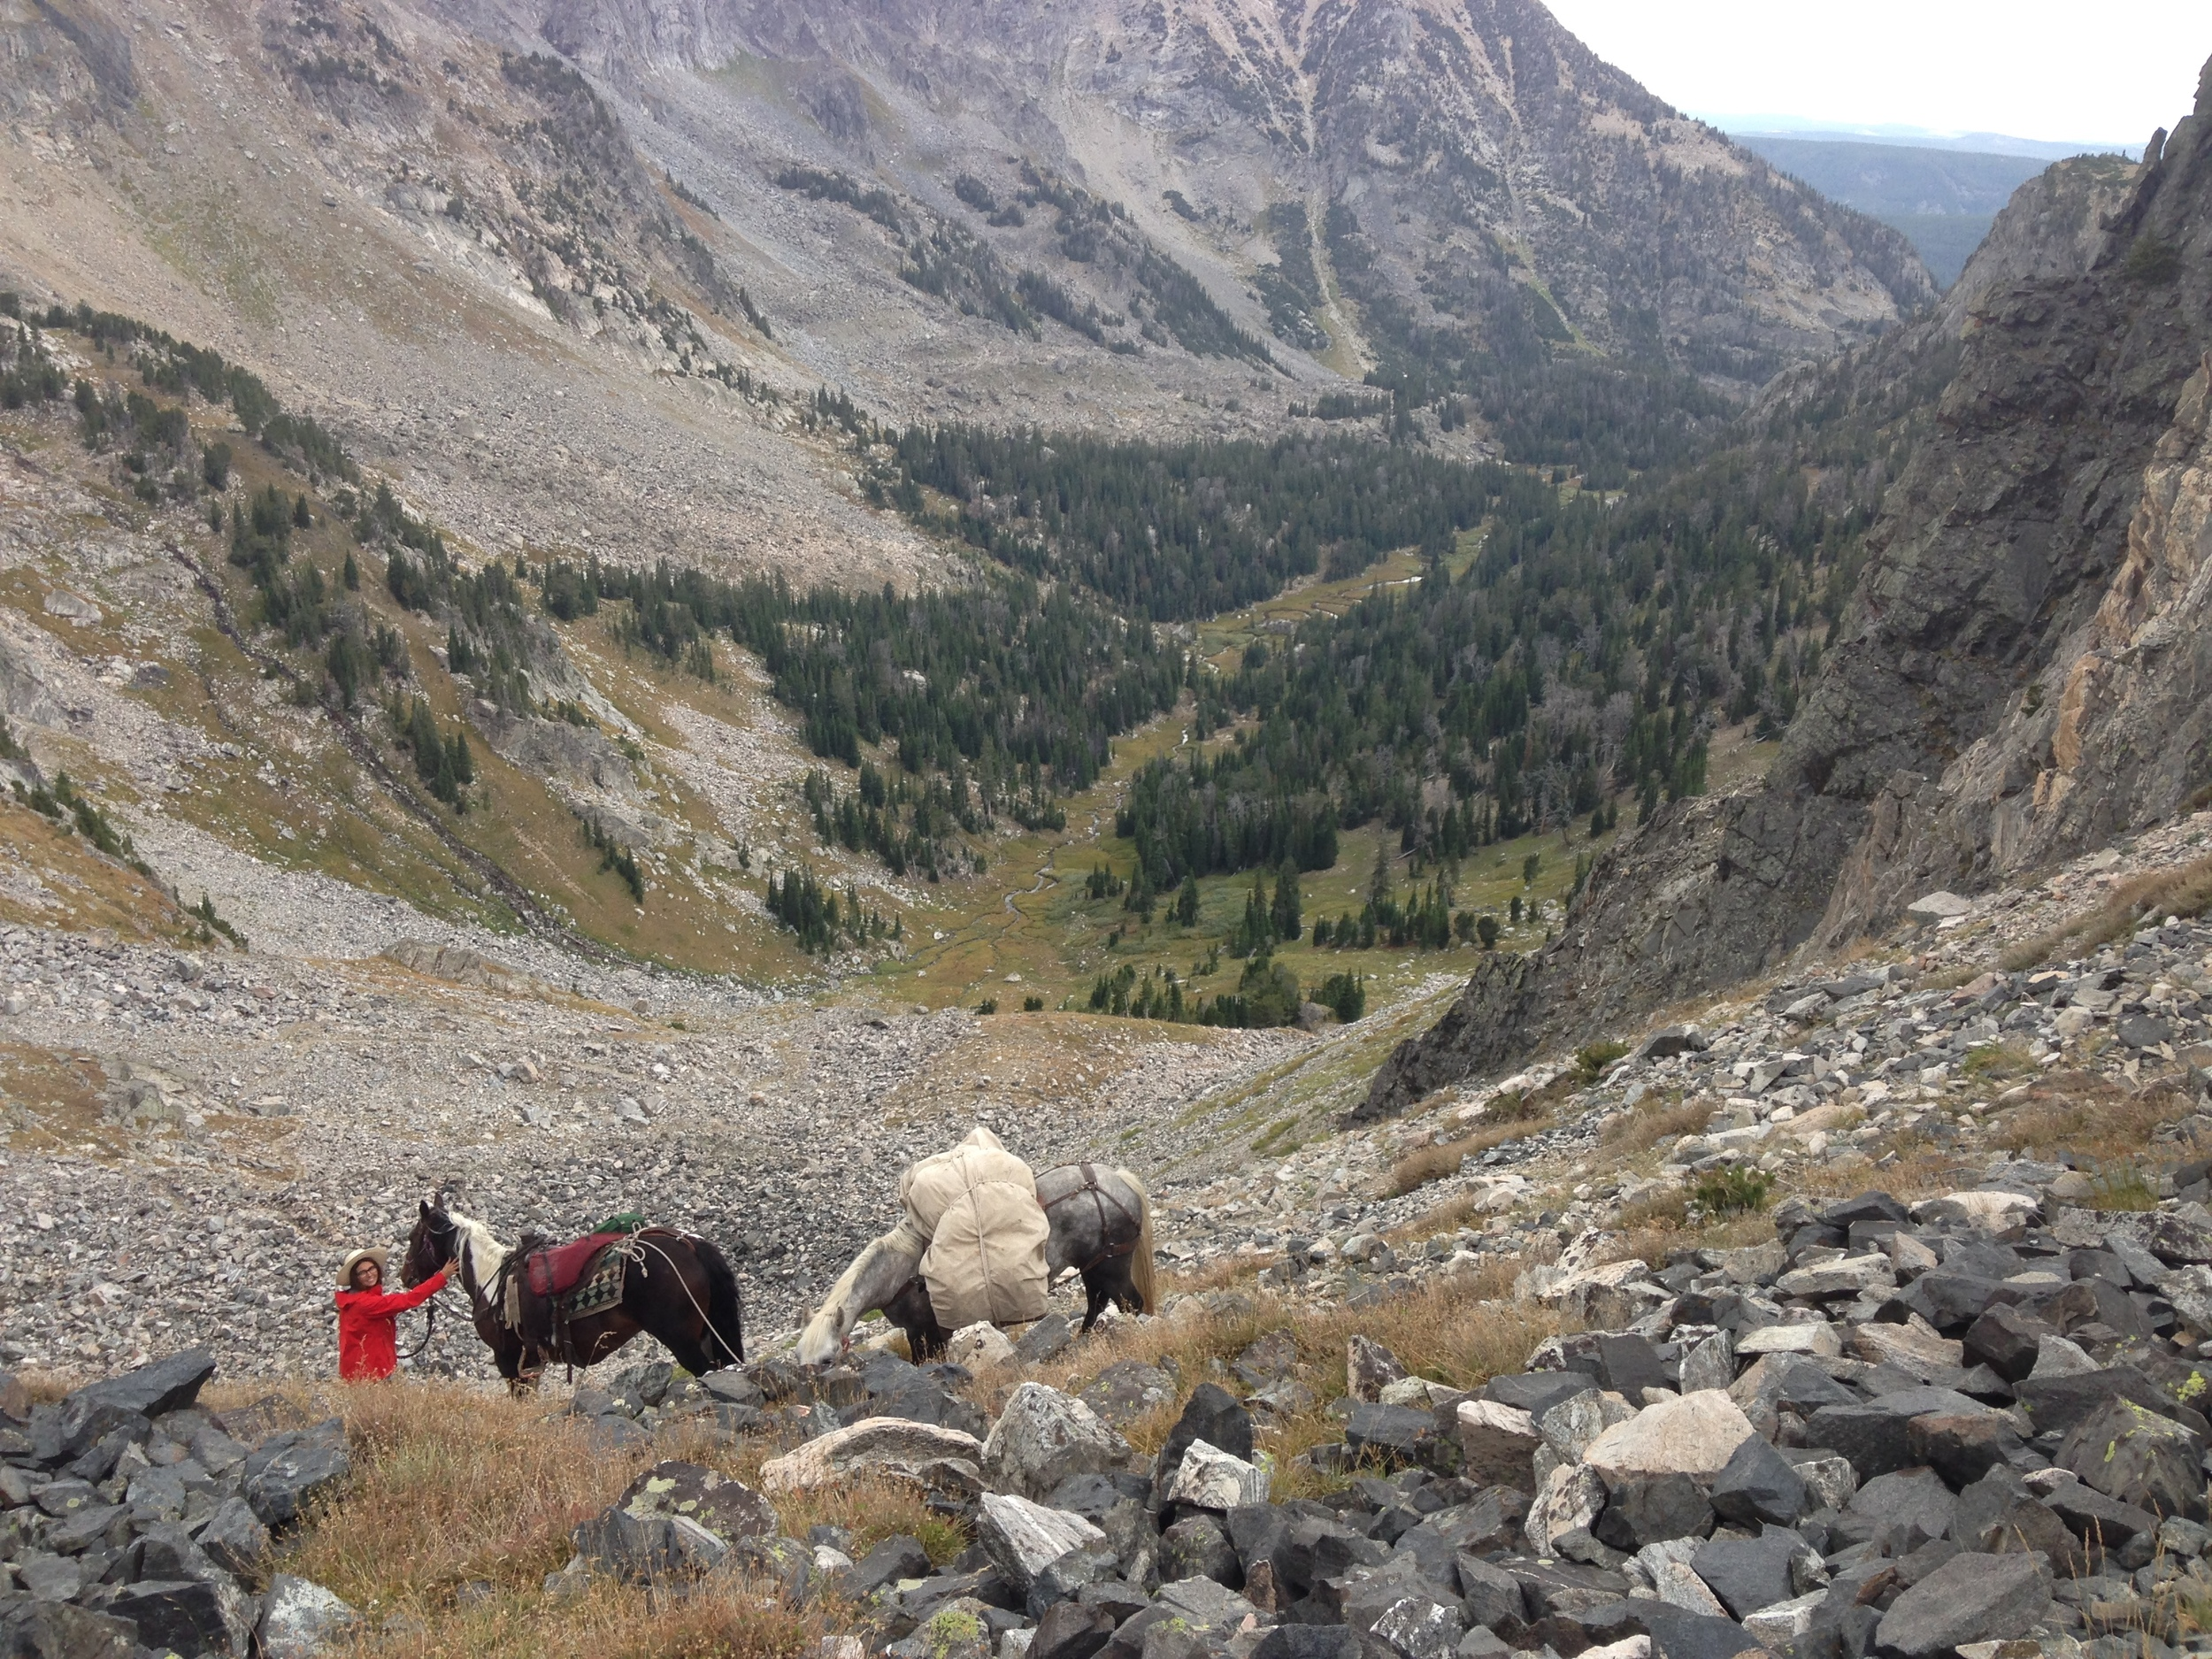 Me and the ponies coming through mountain pass.  Grizzly country!